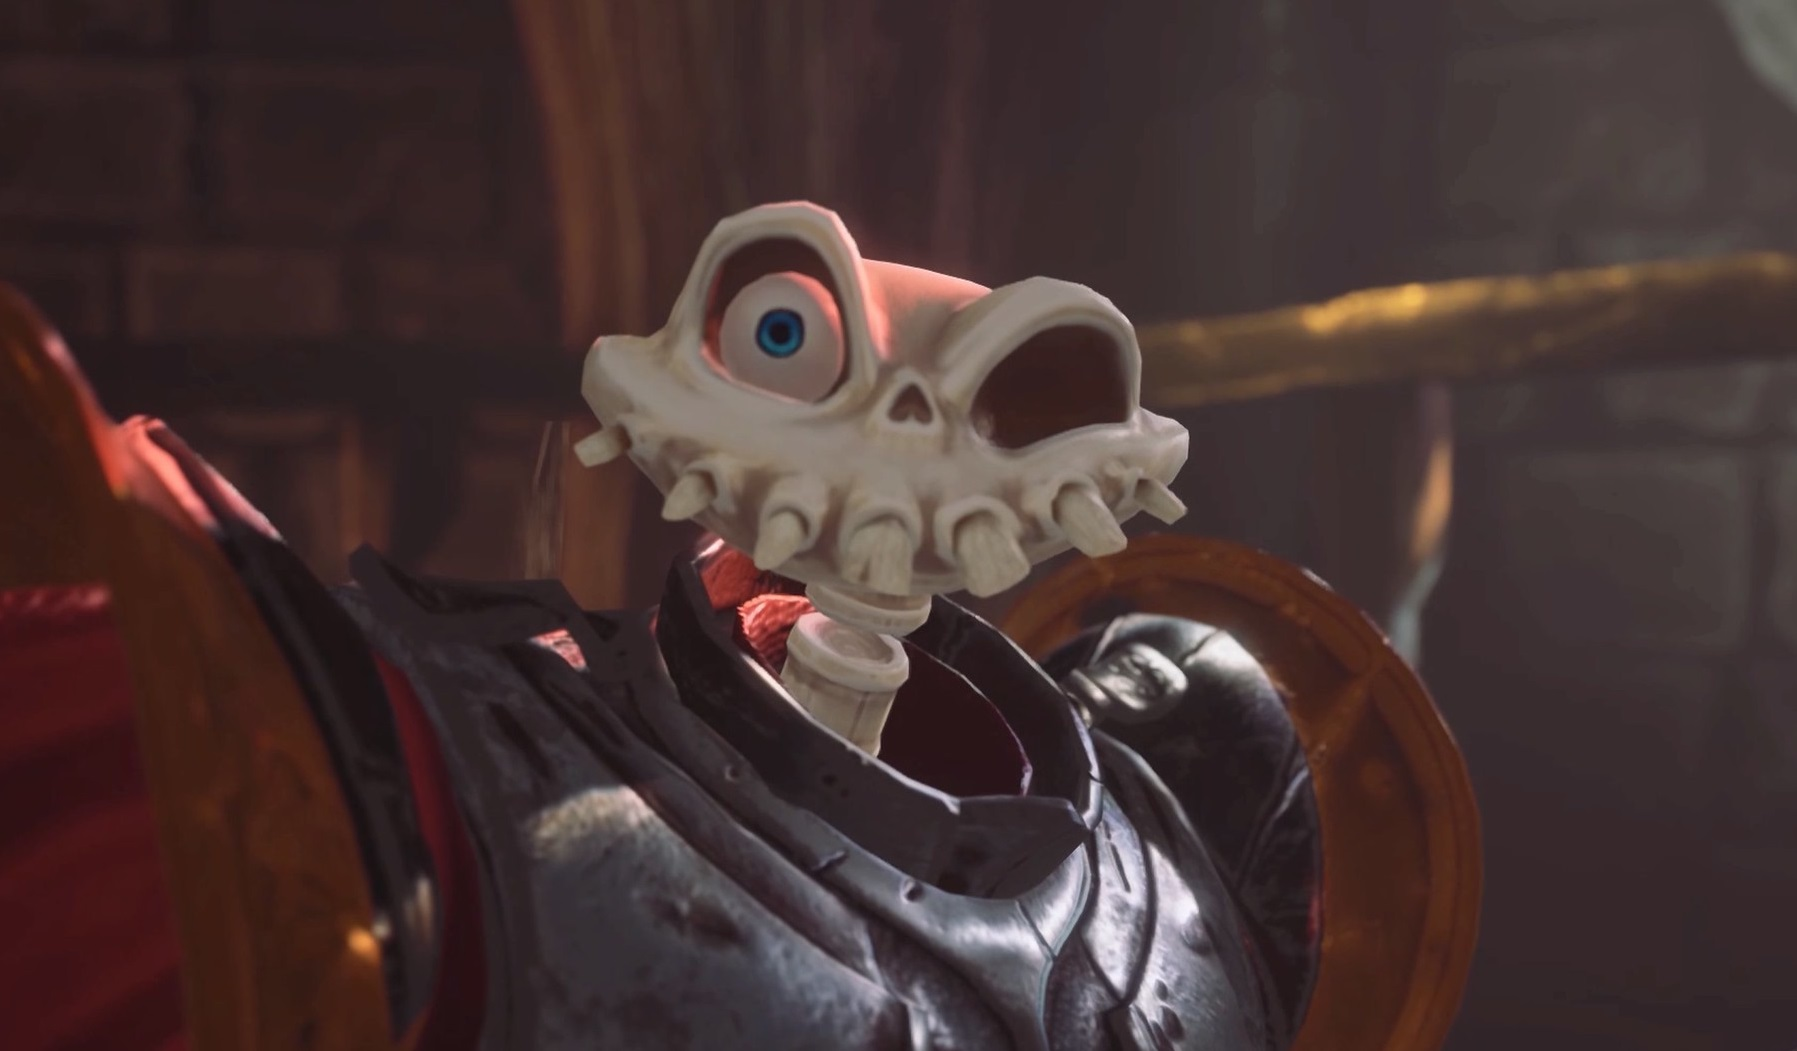 The new MediEvil offers something the original failed to deliver